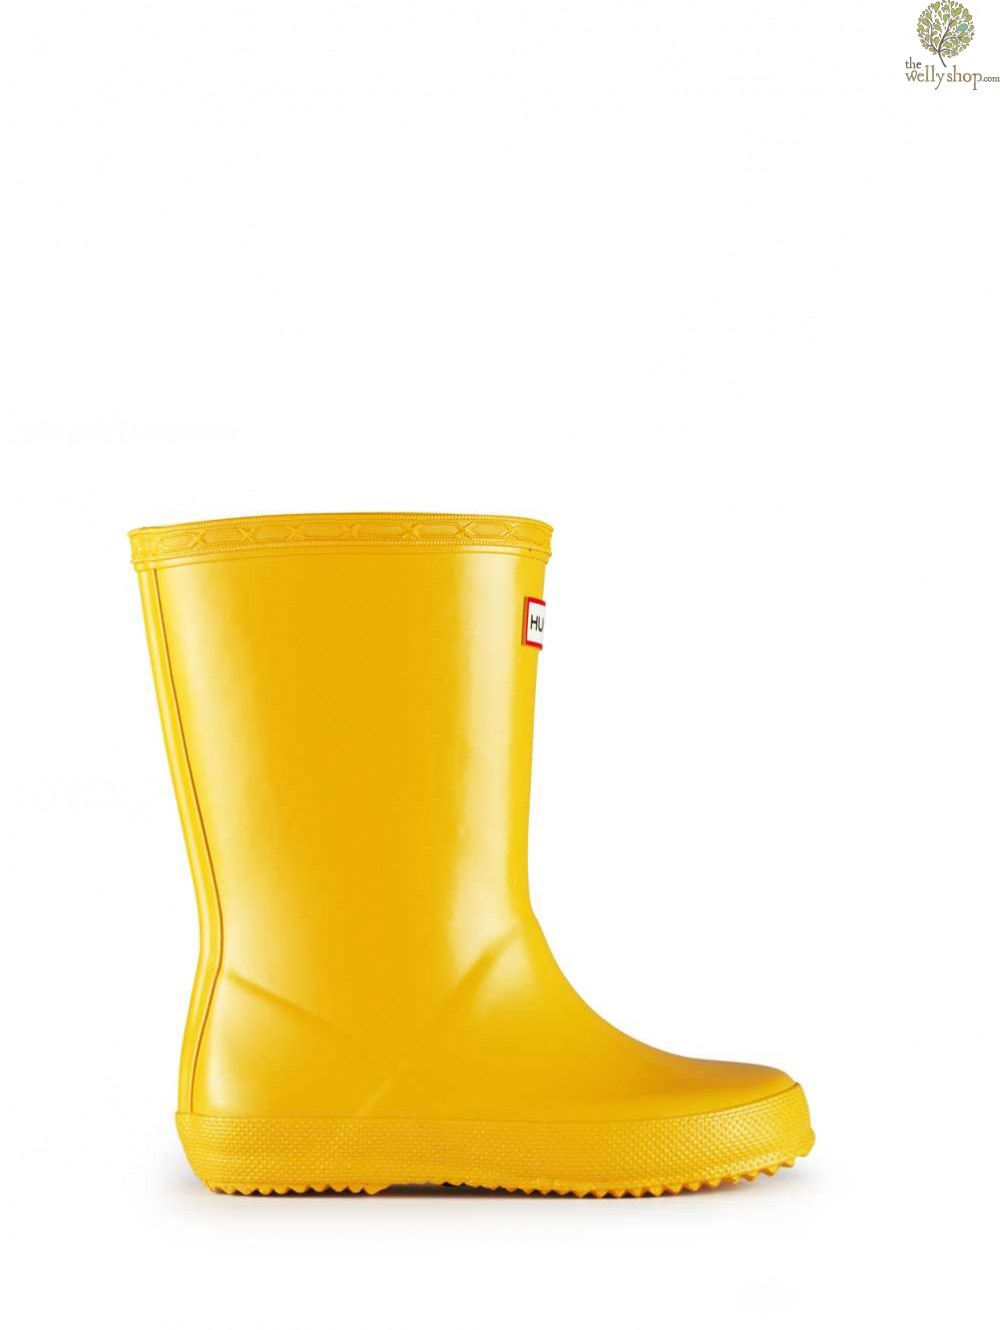 09d190206cb Hunter Kids First Wellies - Suit Toddlers and Smaller Children